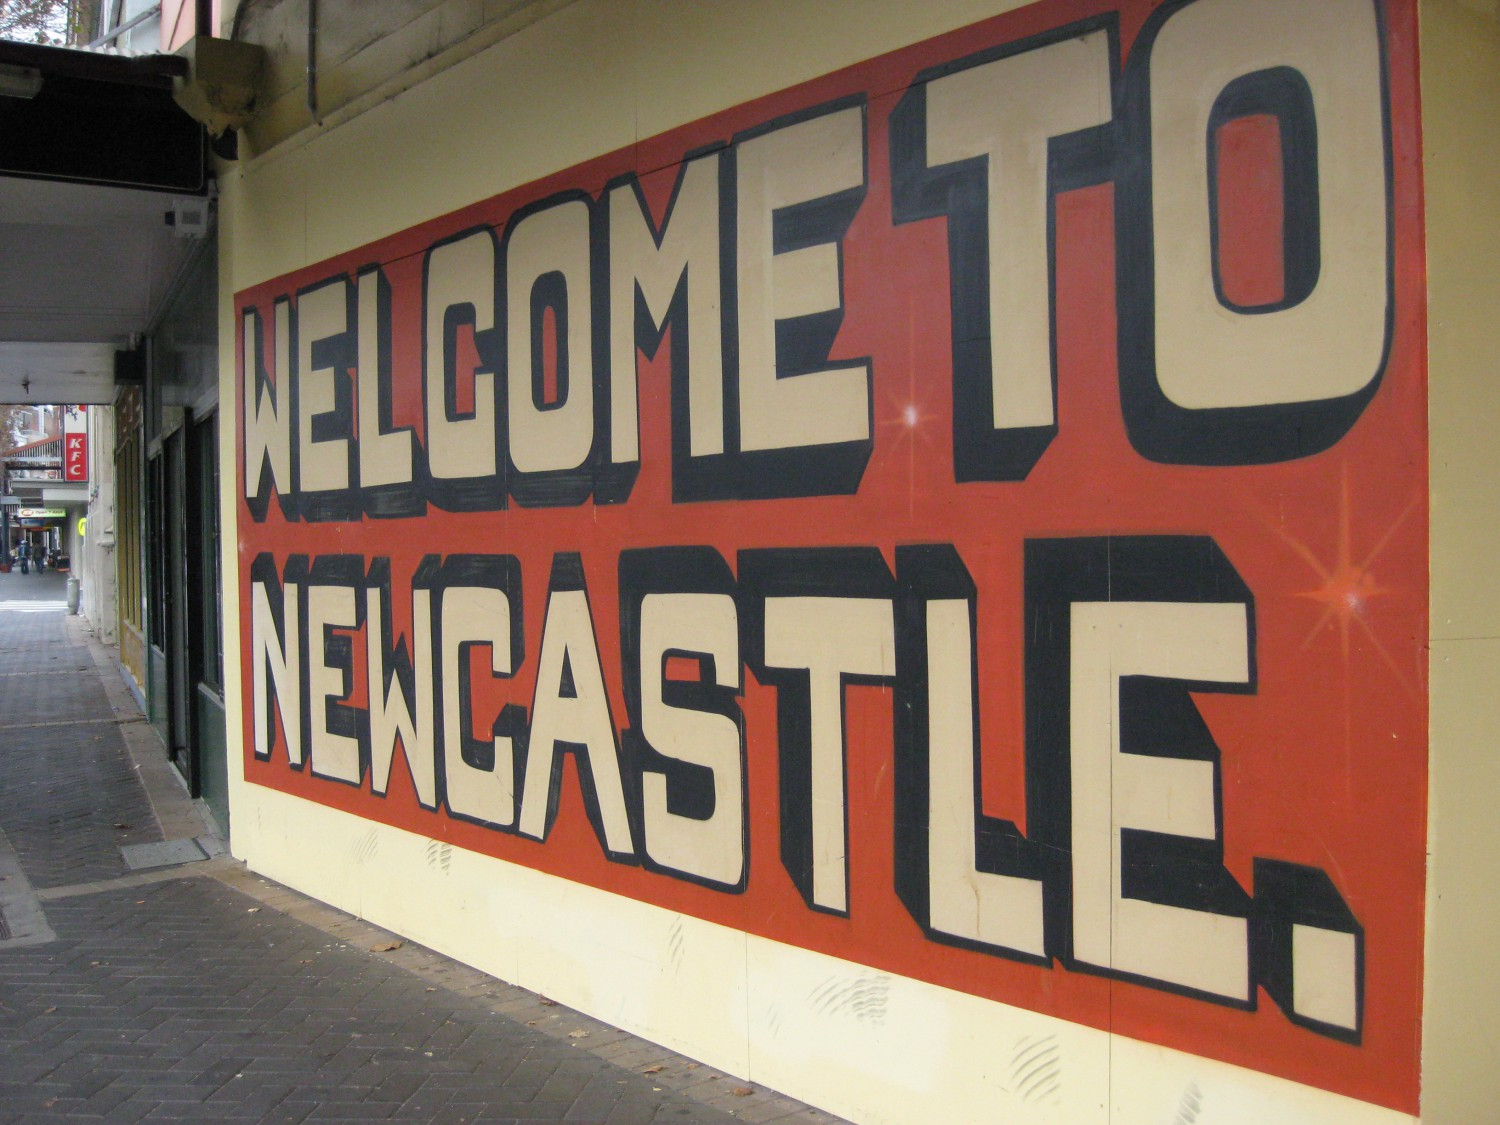 Welcome to Newcastle